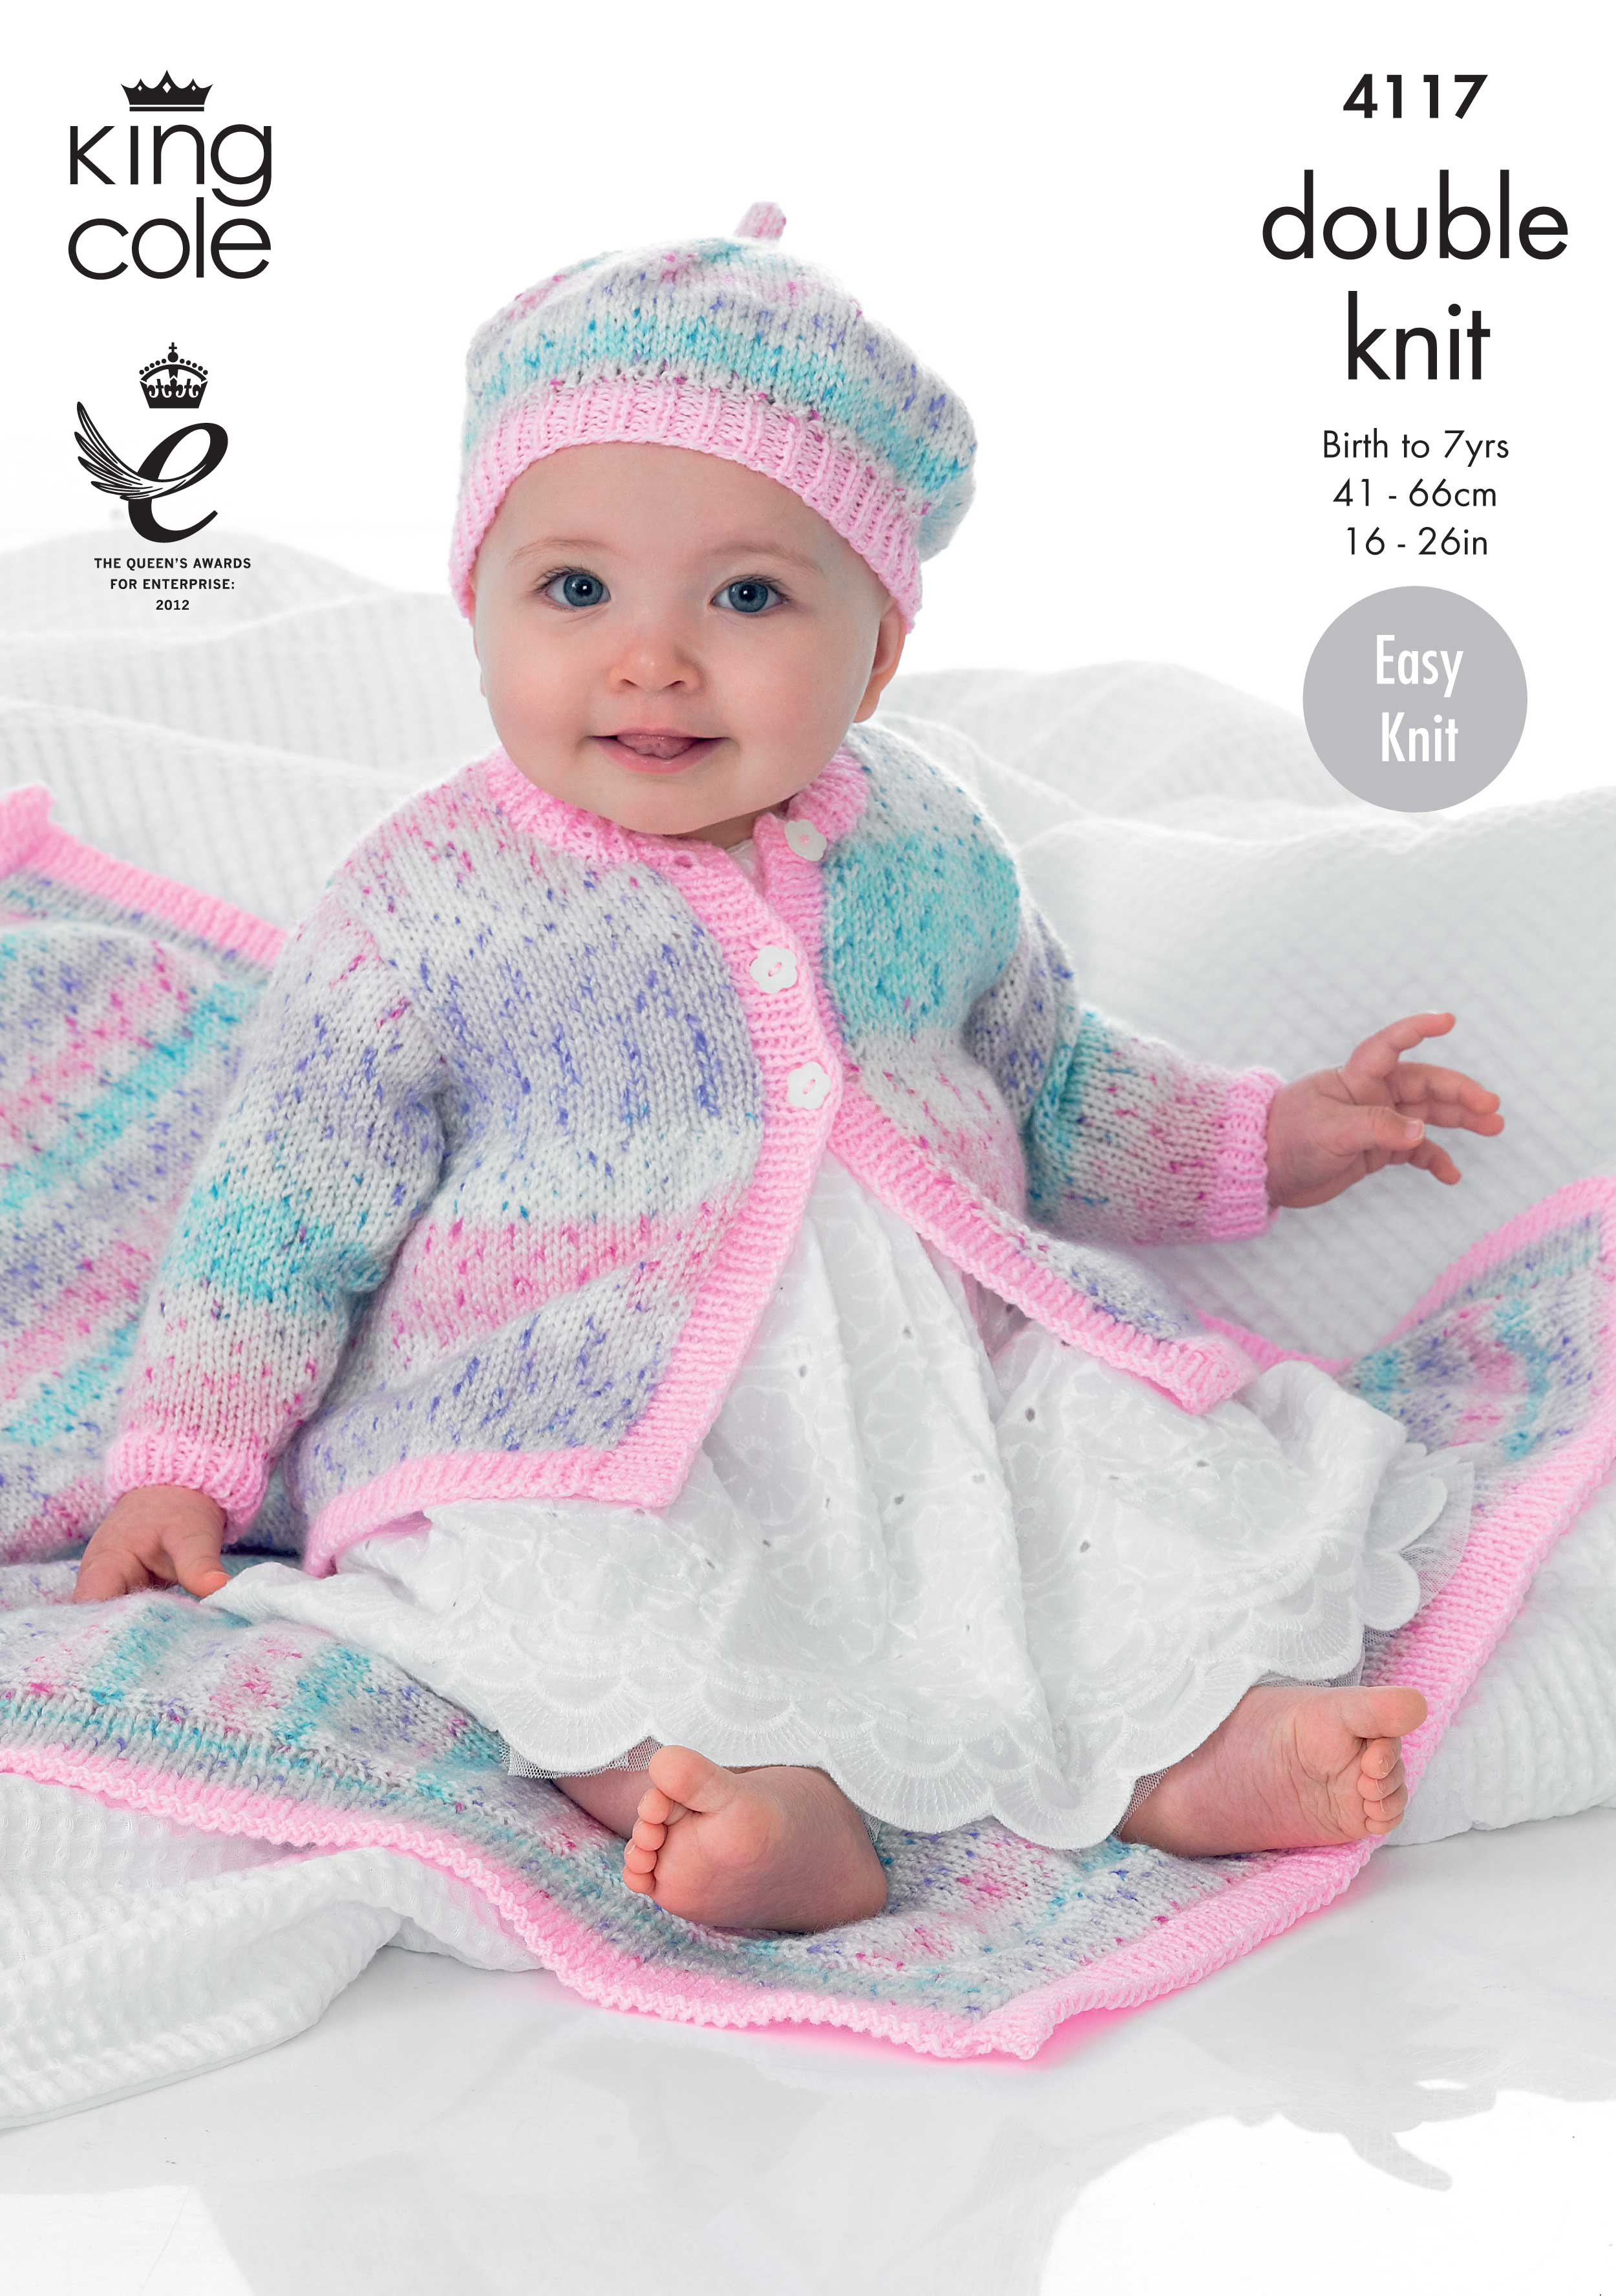 Beret Knitting Pattern Easy Easy To Follow Coat Beret And Blanket Knitted With Splash Dk